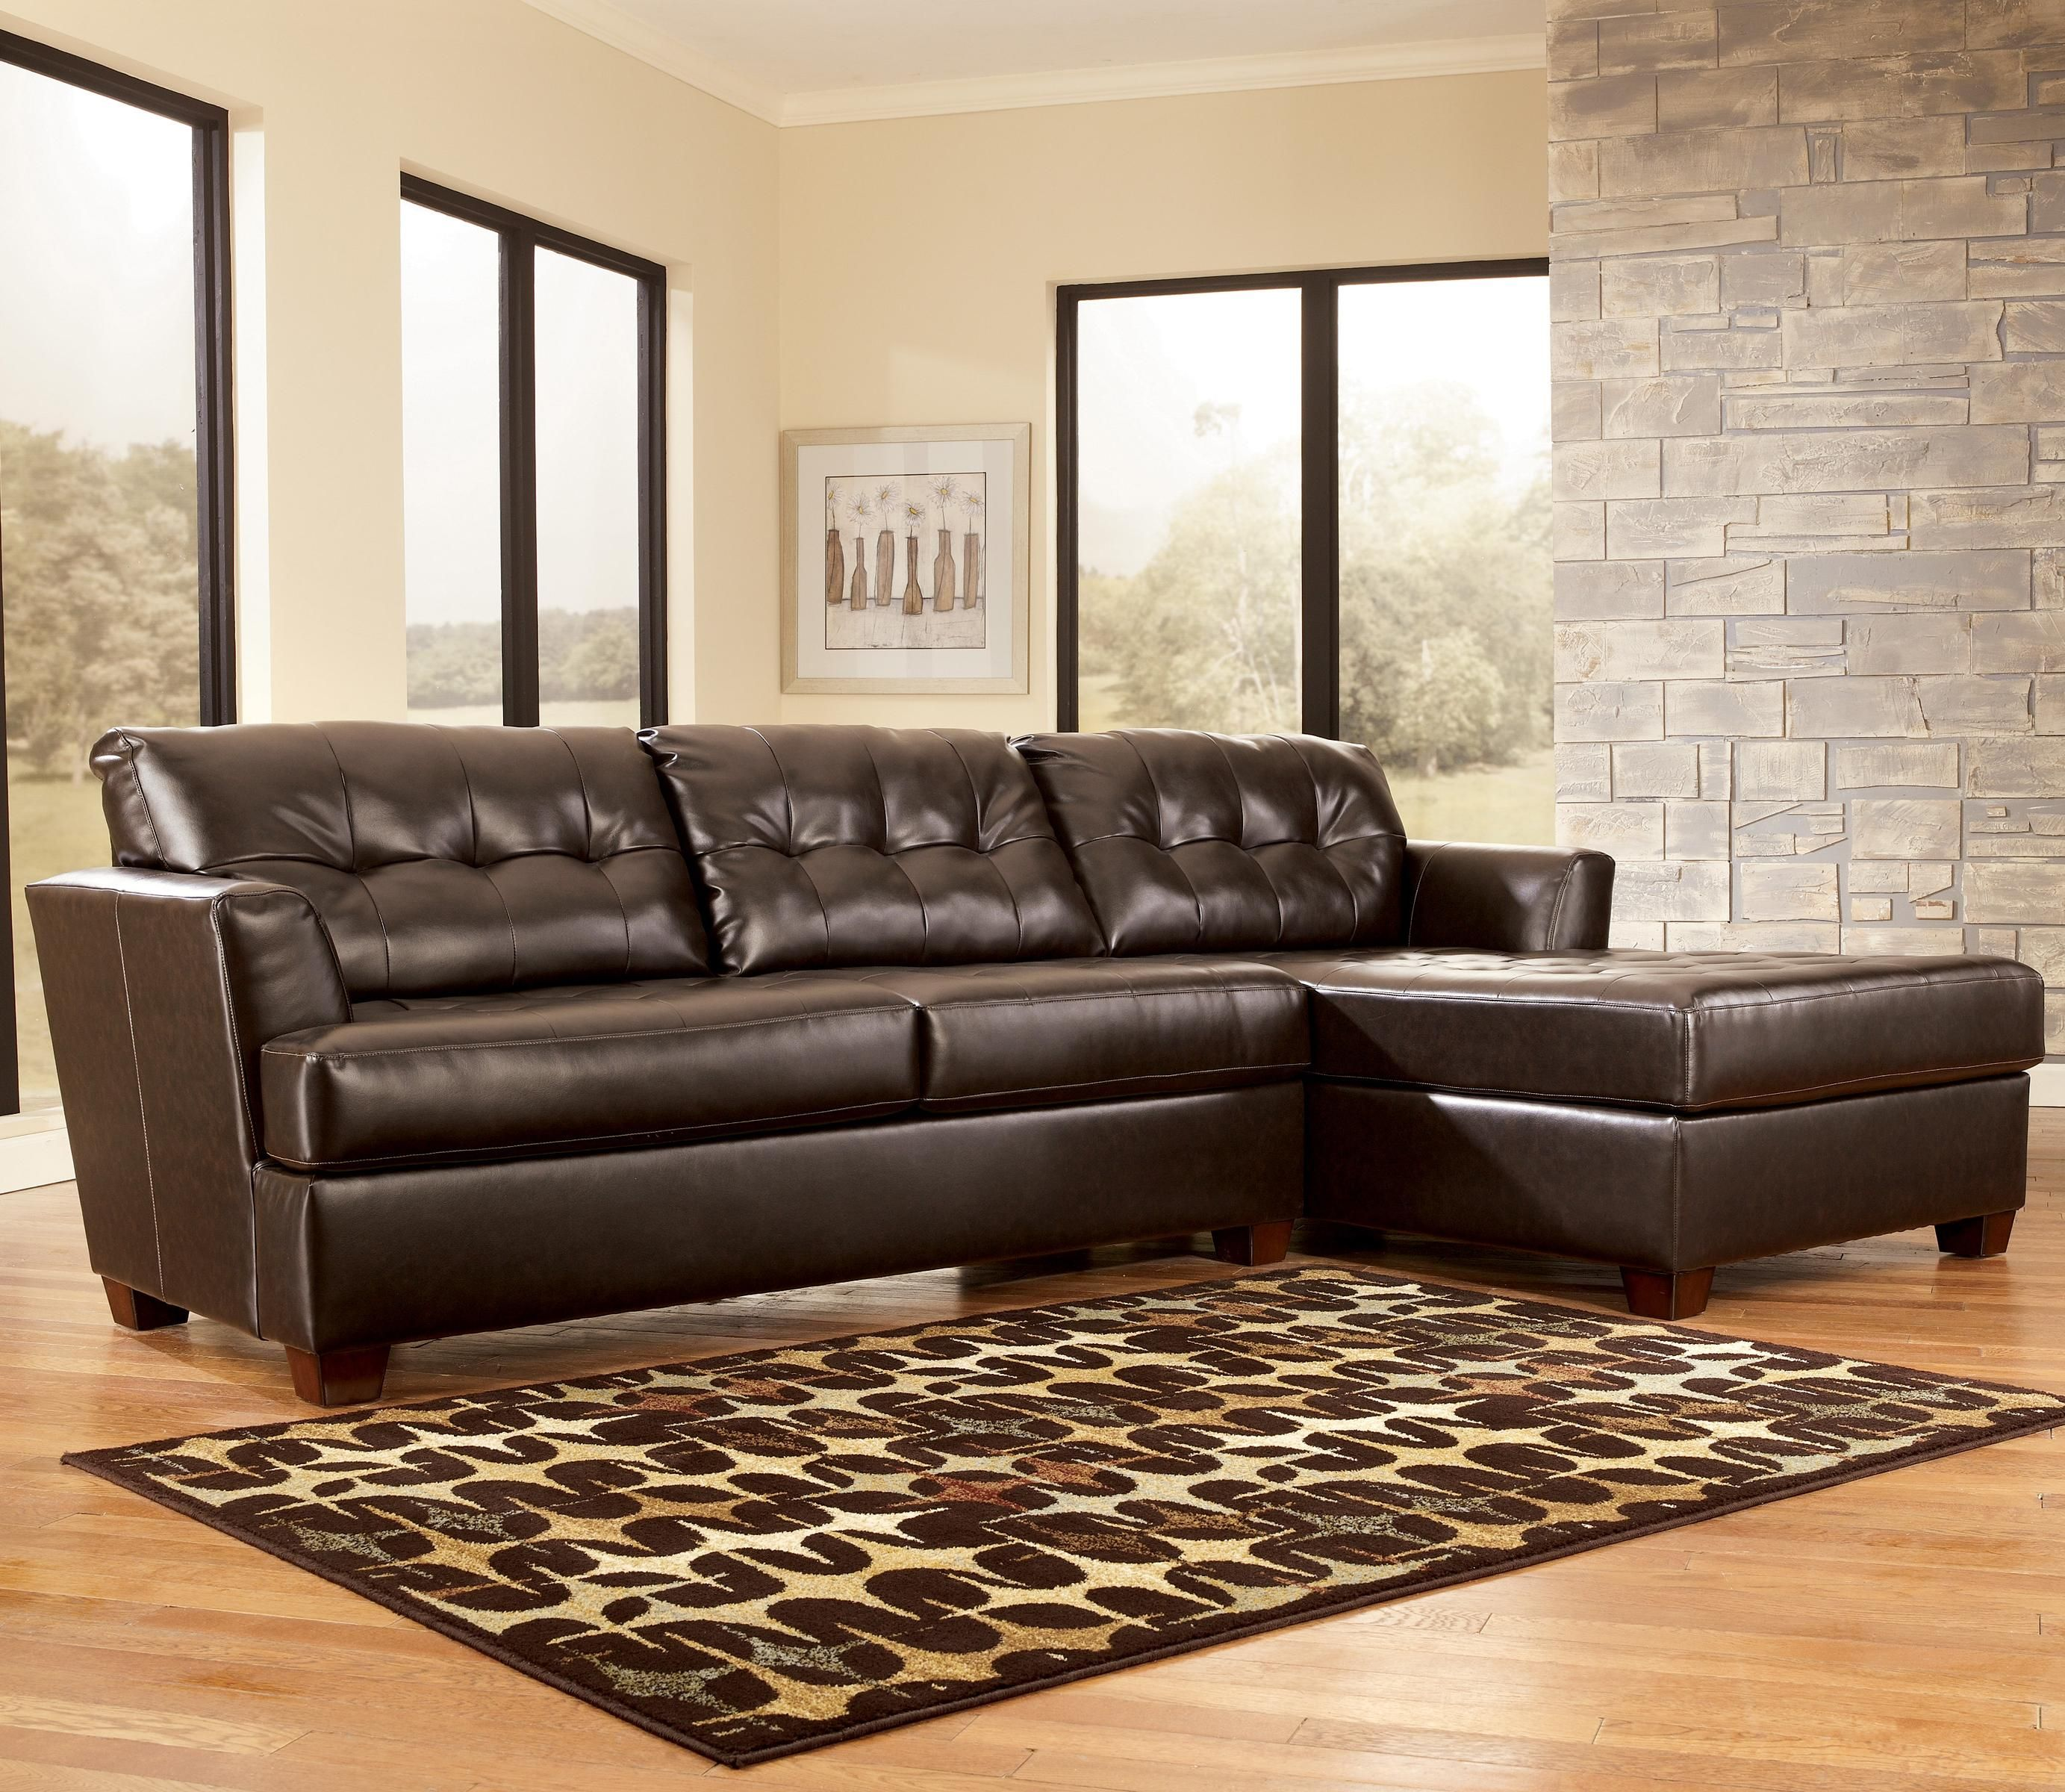 Dixon Durablend Chocolate Sectional Sofa By Signature Design By